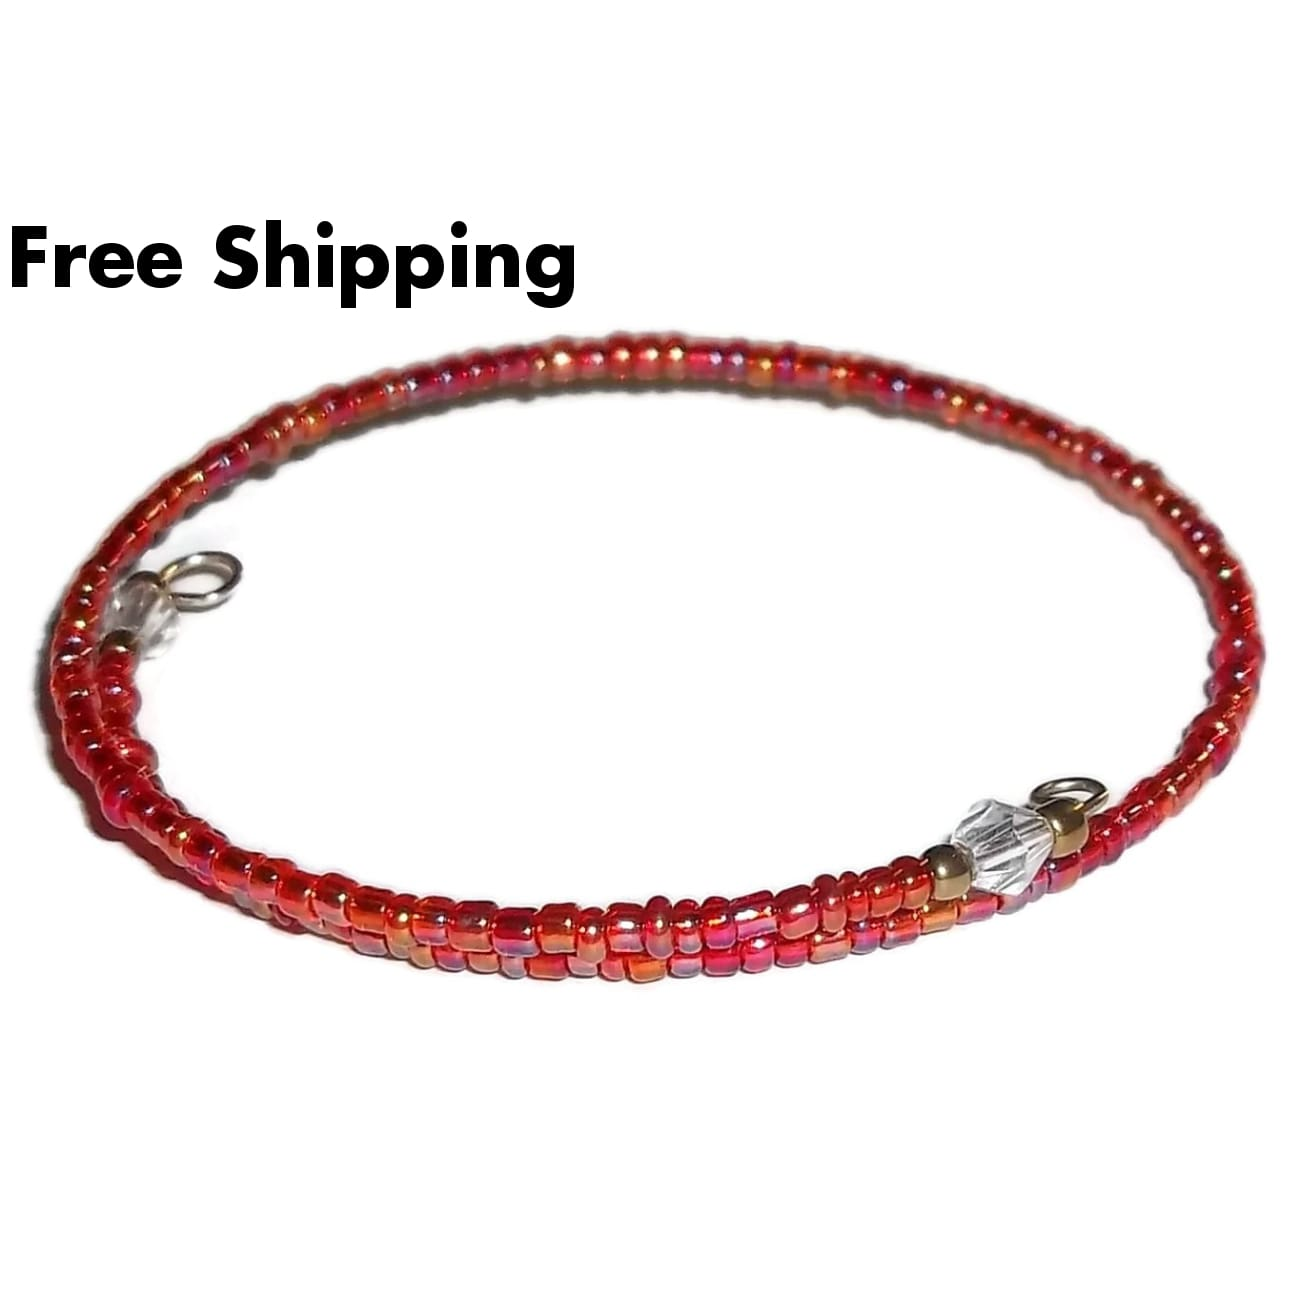 Red Carnival Glass Beaded Artisan Crafted Stackable Wrap Bracelet (S-M) - New Arrival